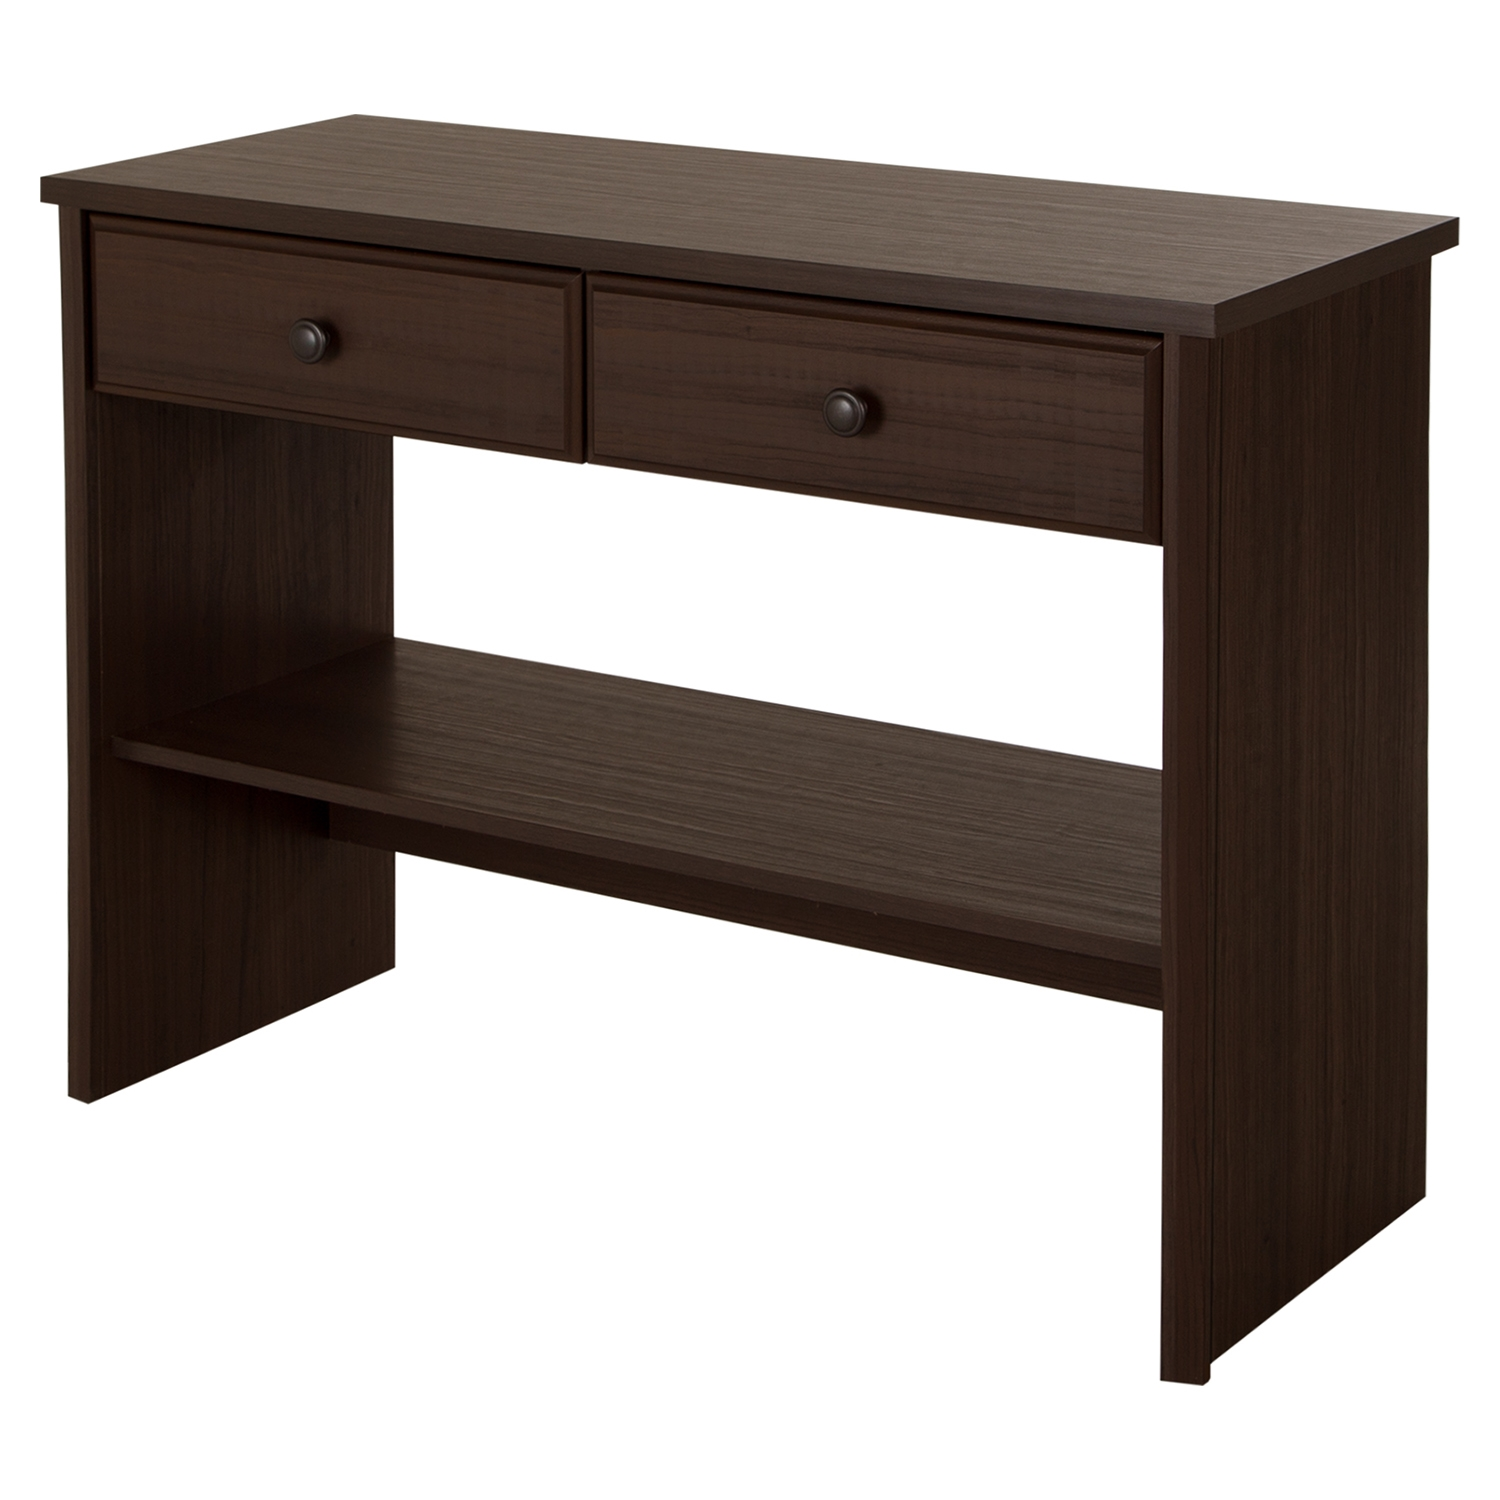 Beaujolais Console Table - 2 Drawers, Matte Brown - SS-9046630